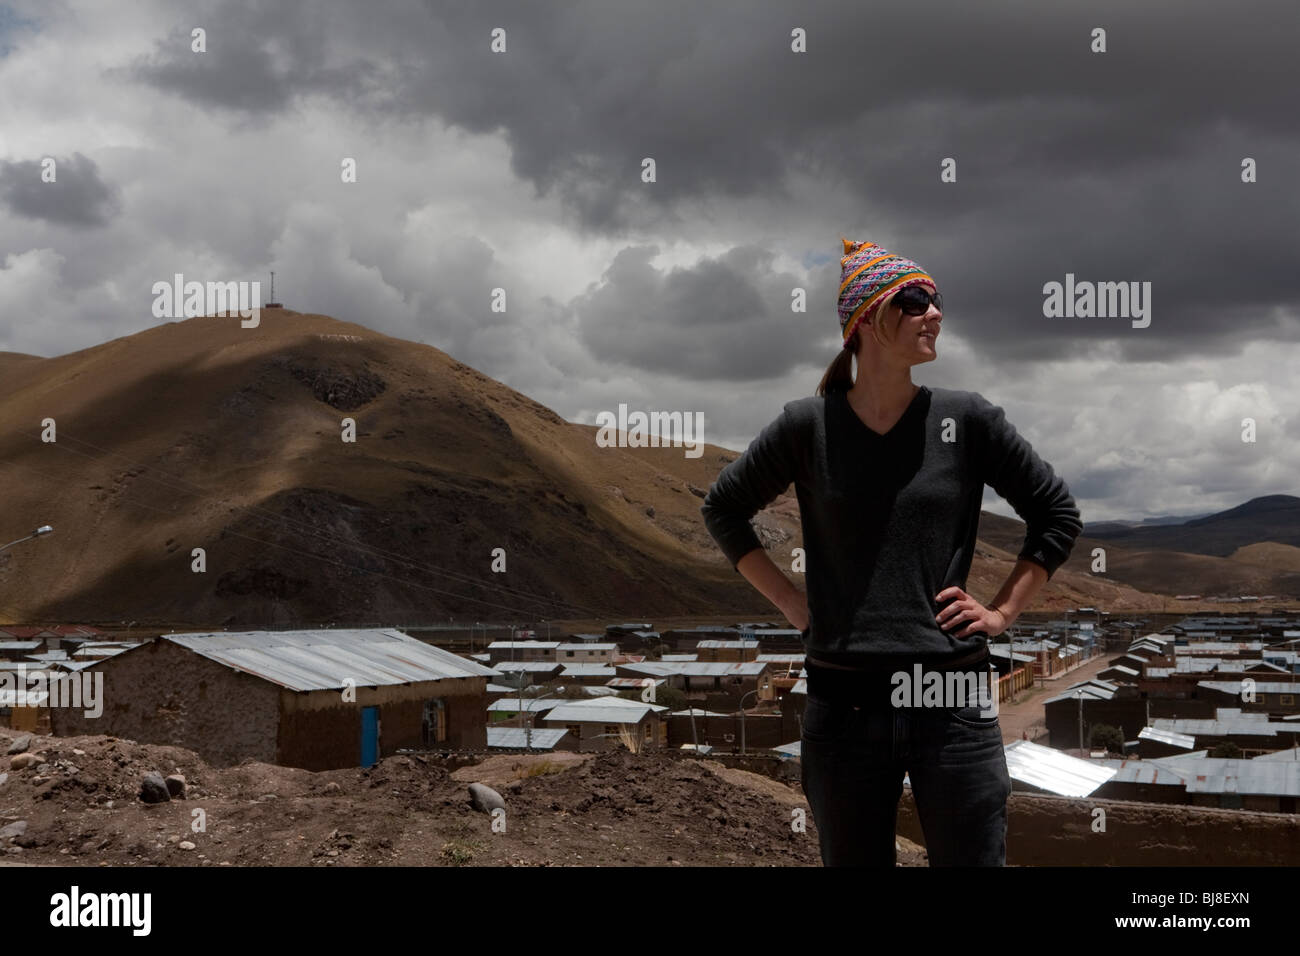 western woman in traditional hat and sunglasses standing in front of peruvian mountain village - Stock Image